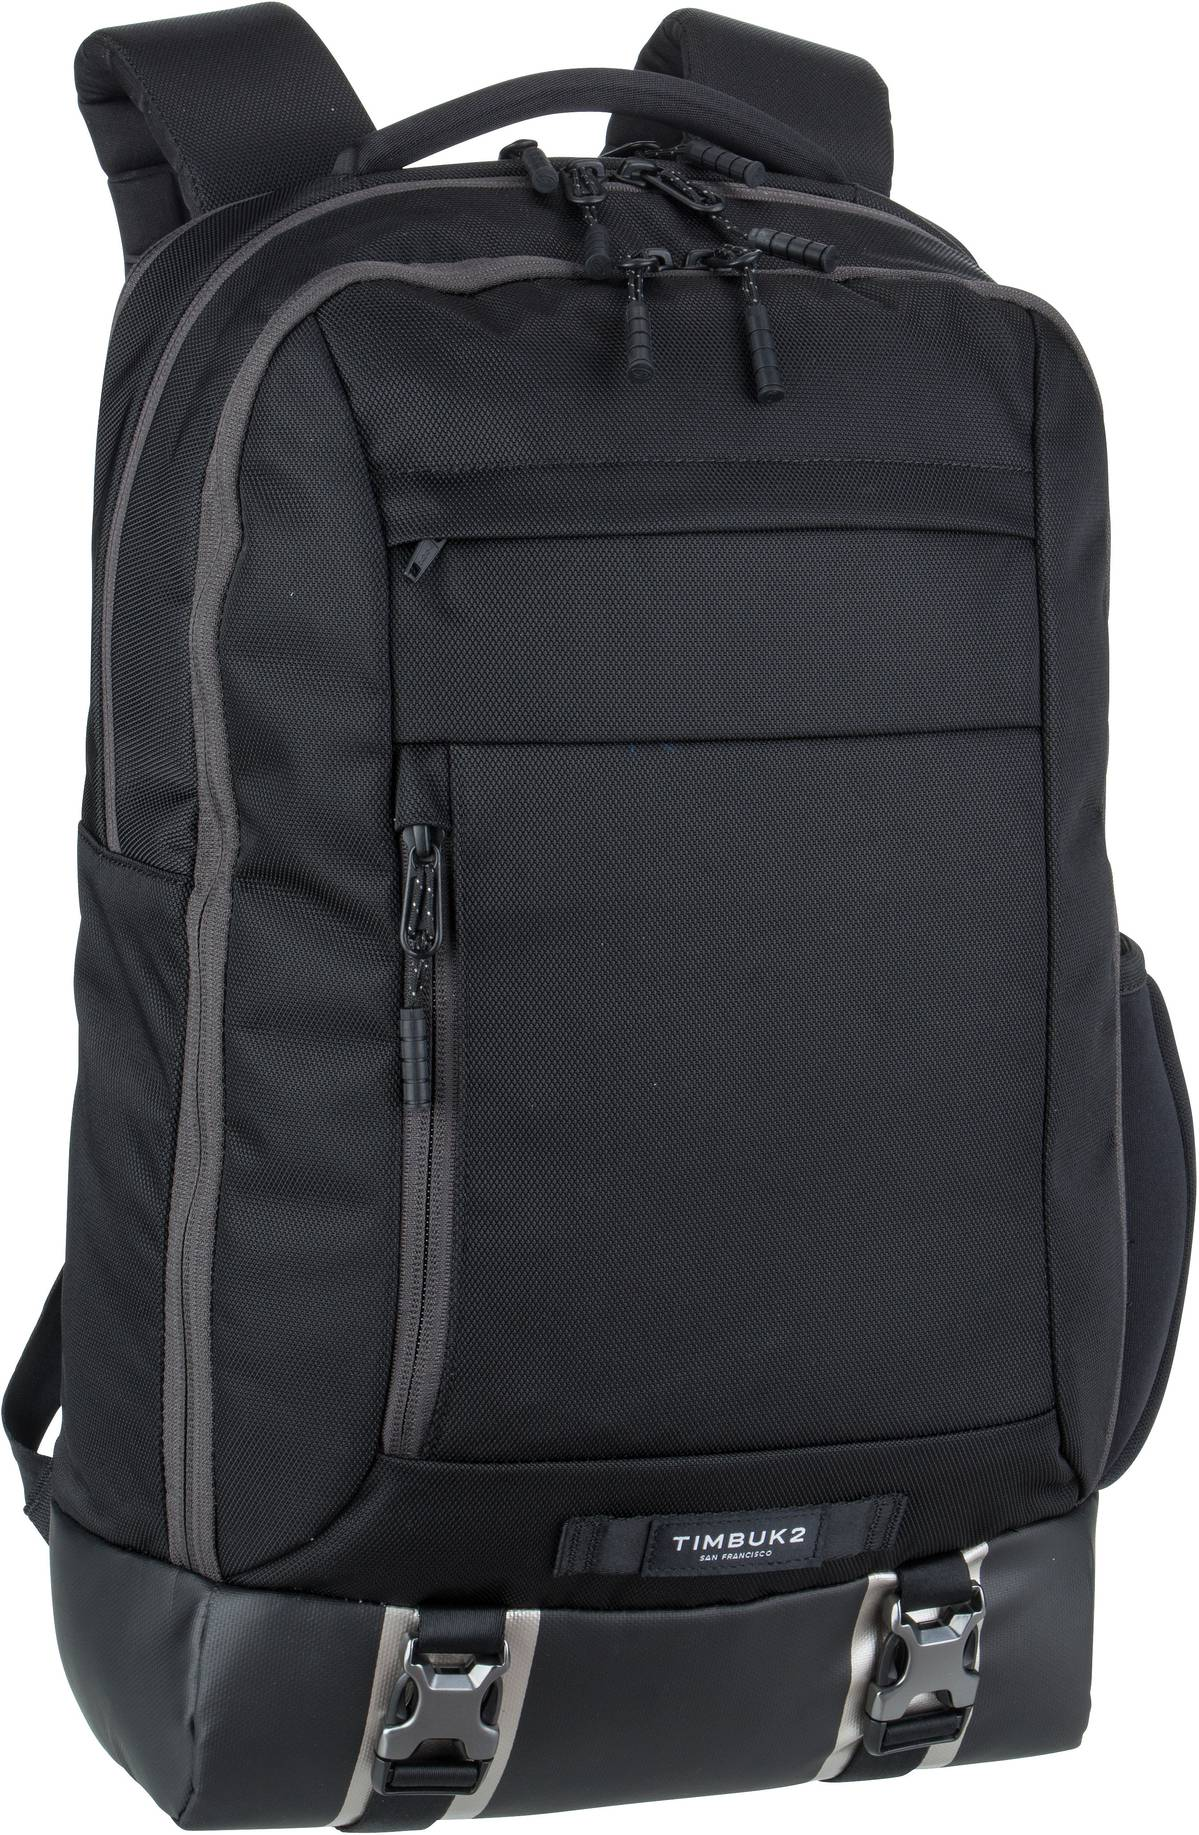 Laptoprucksack The Authority Pack DLX Black Deluxe (28 Liter)